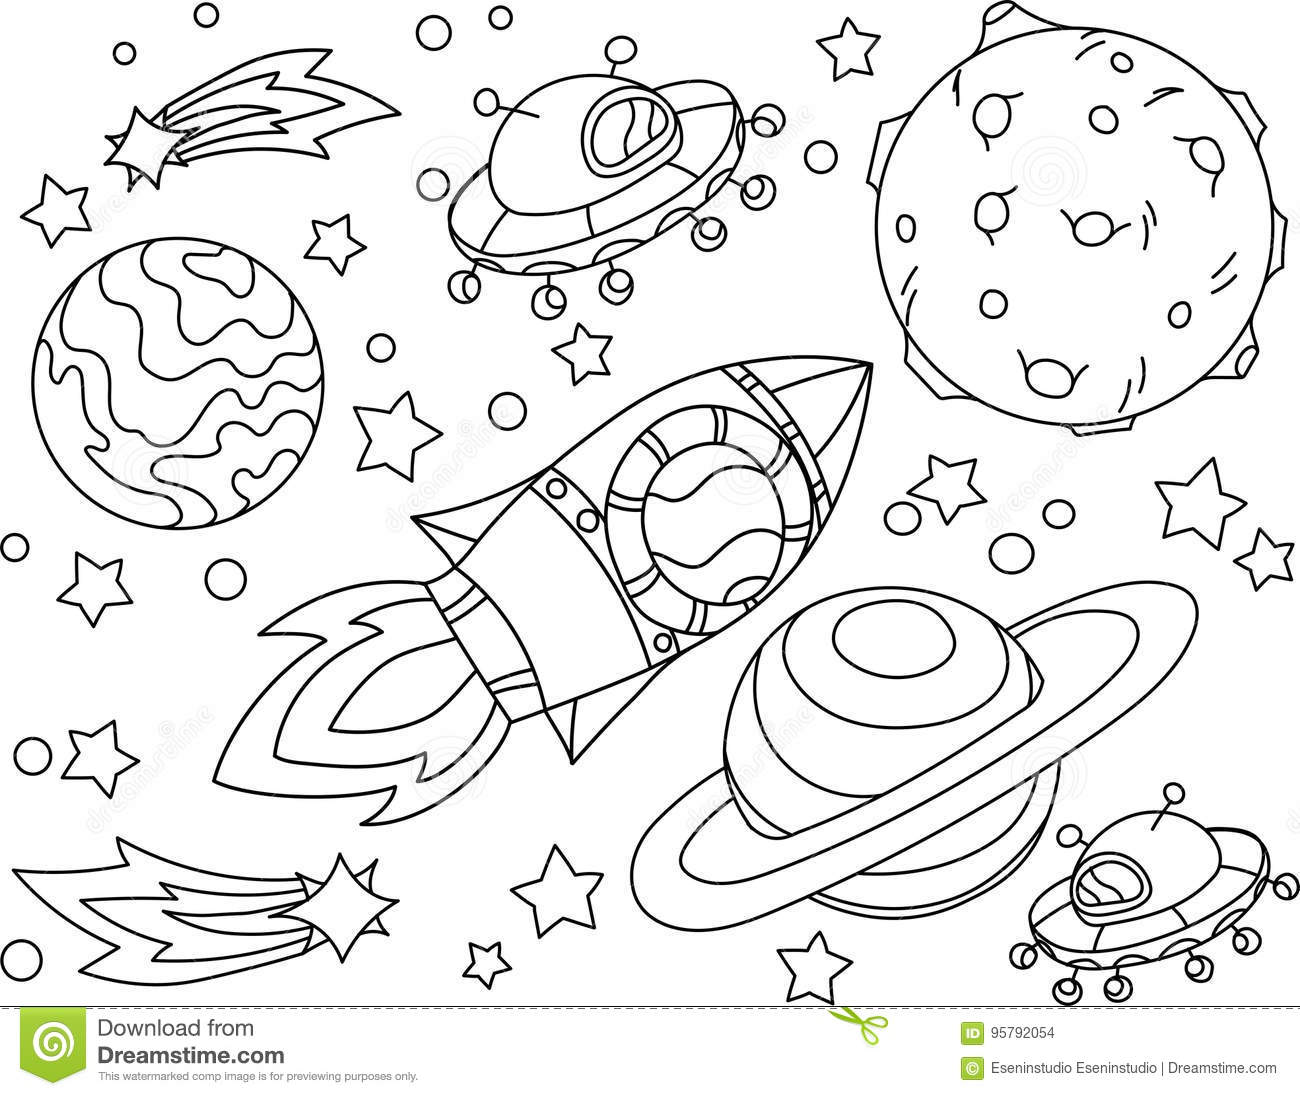 Coloriage Simple Fusee.La Fusee Vole A Livre De Coloriage De Lune Illustration Antistress